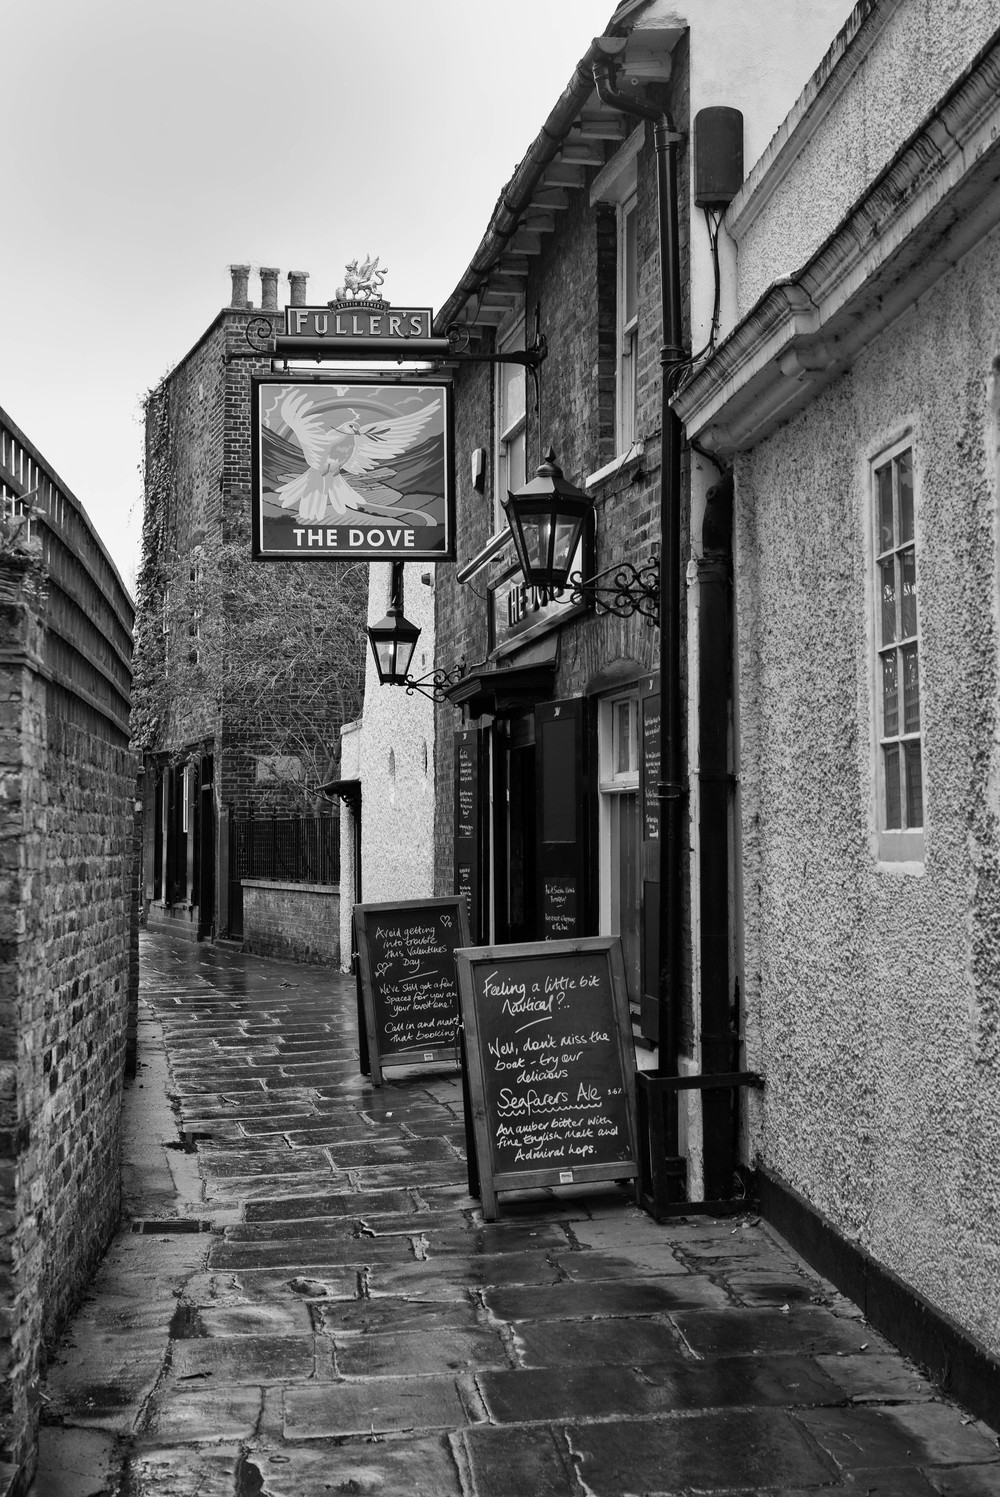 The ancient Dove tavern. At the end of the alleyway you can see the Doves Press building, while Cobden-Sanderson's house sits between pub and press. A convenient and convivial arrangement. (Photos Mike Evans, Leica M-P and 50mm Apo-Summicron-M ASPH)